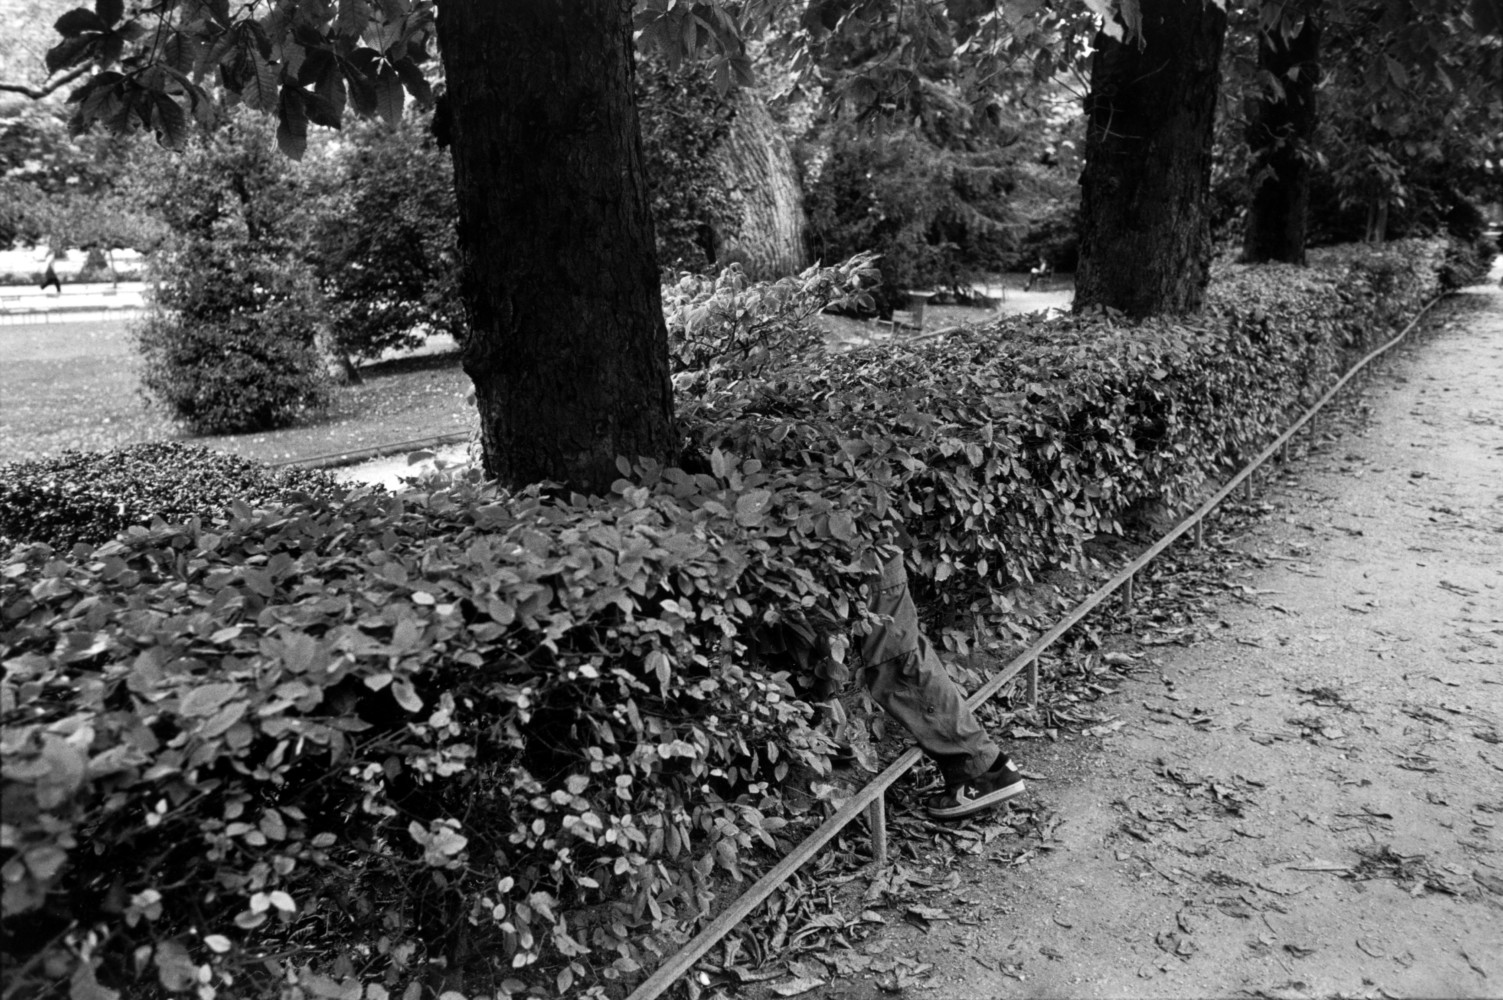 Black and white street photography by Richard Kalver, a leg disappears into a bush in Luxembourg Gardens Paris.